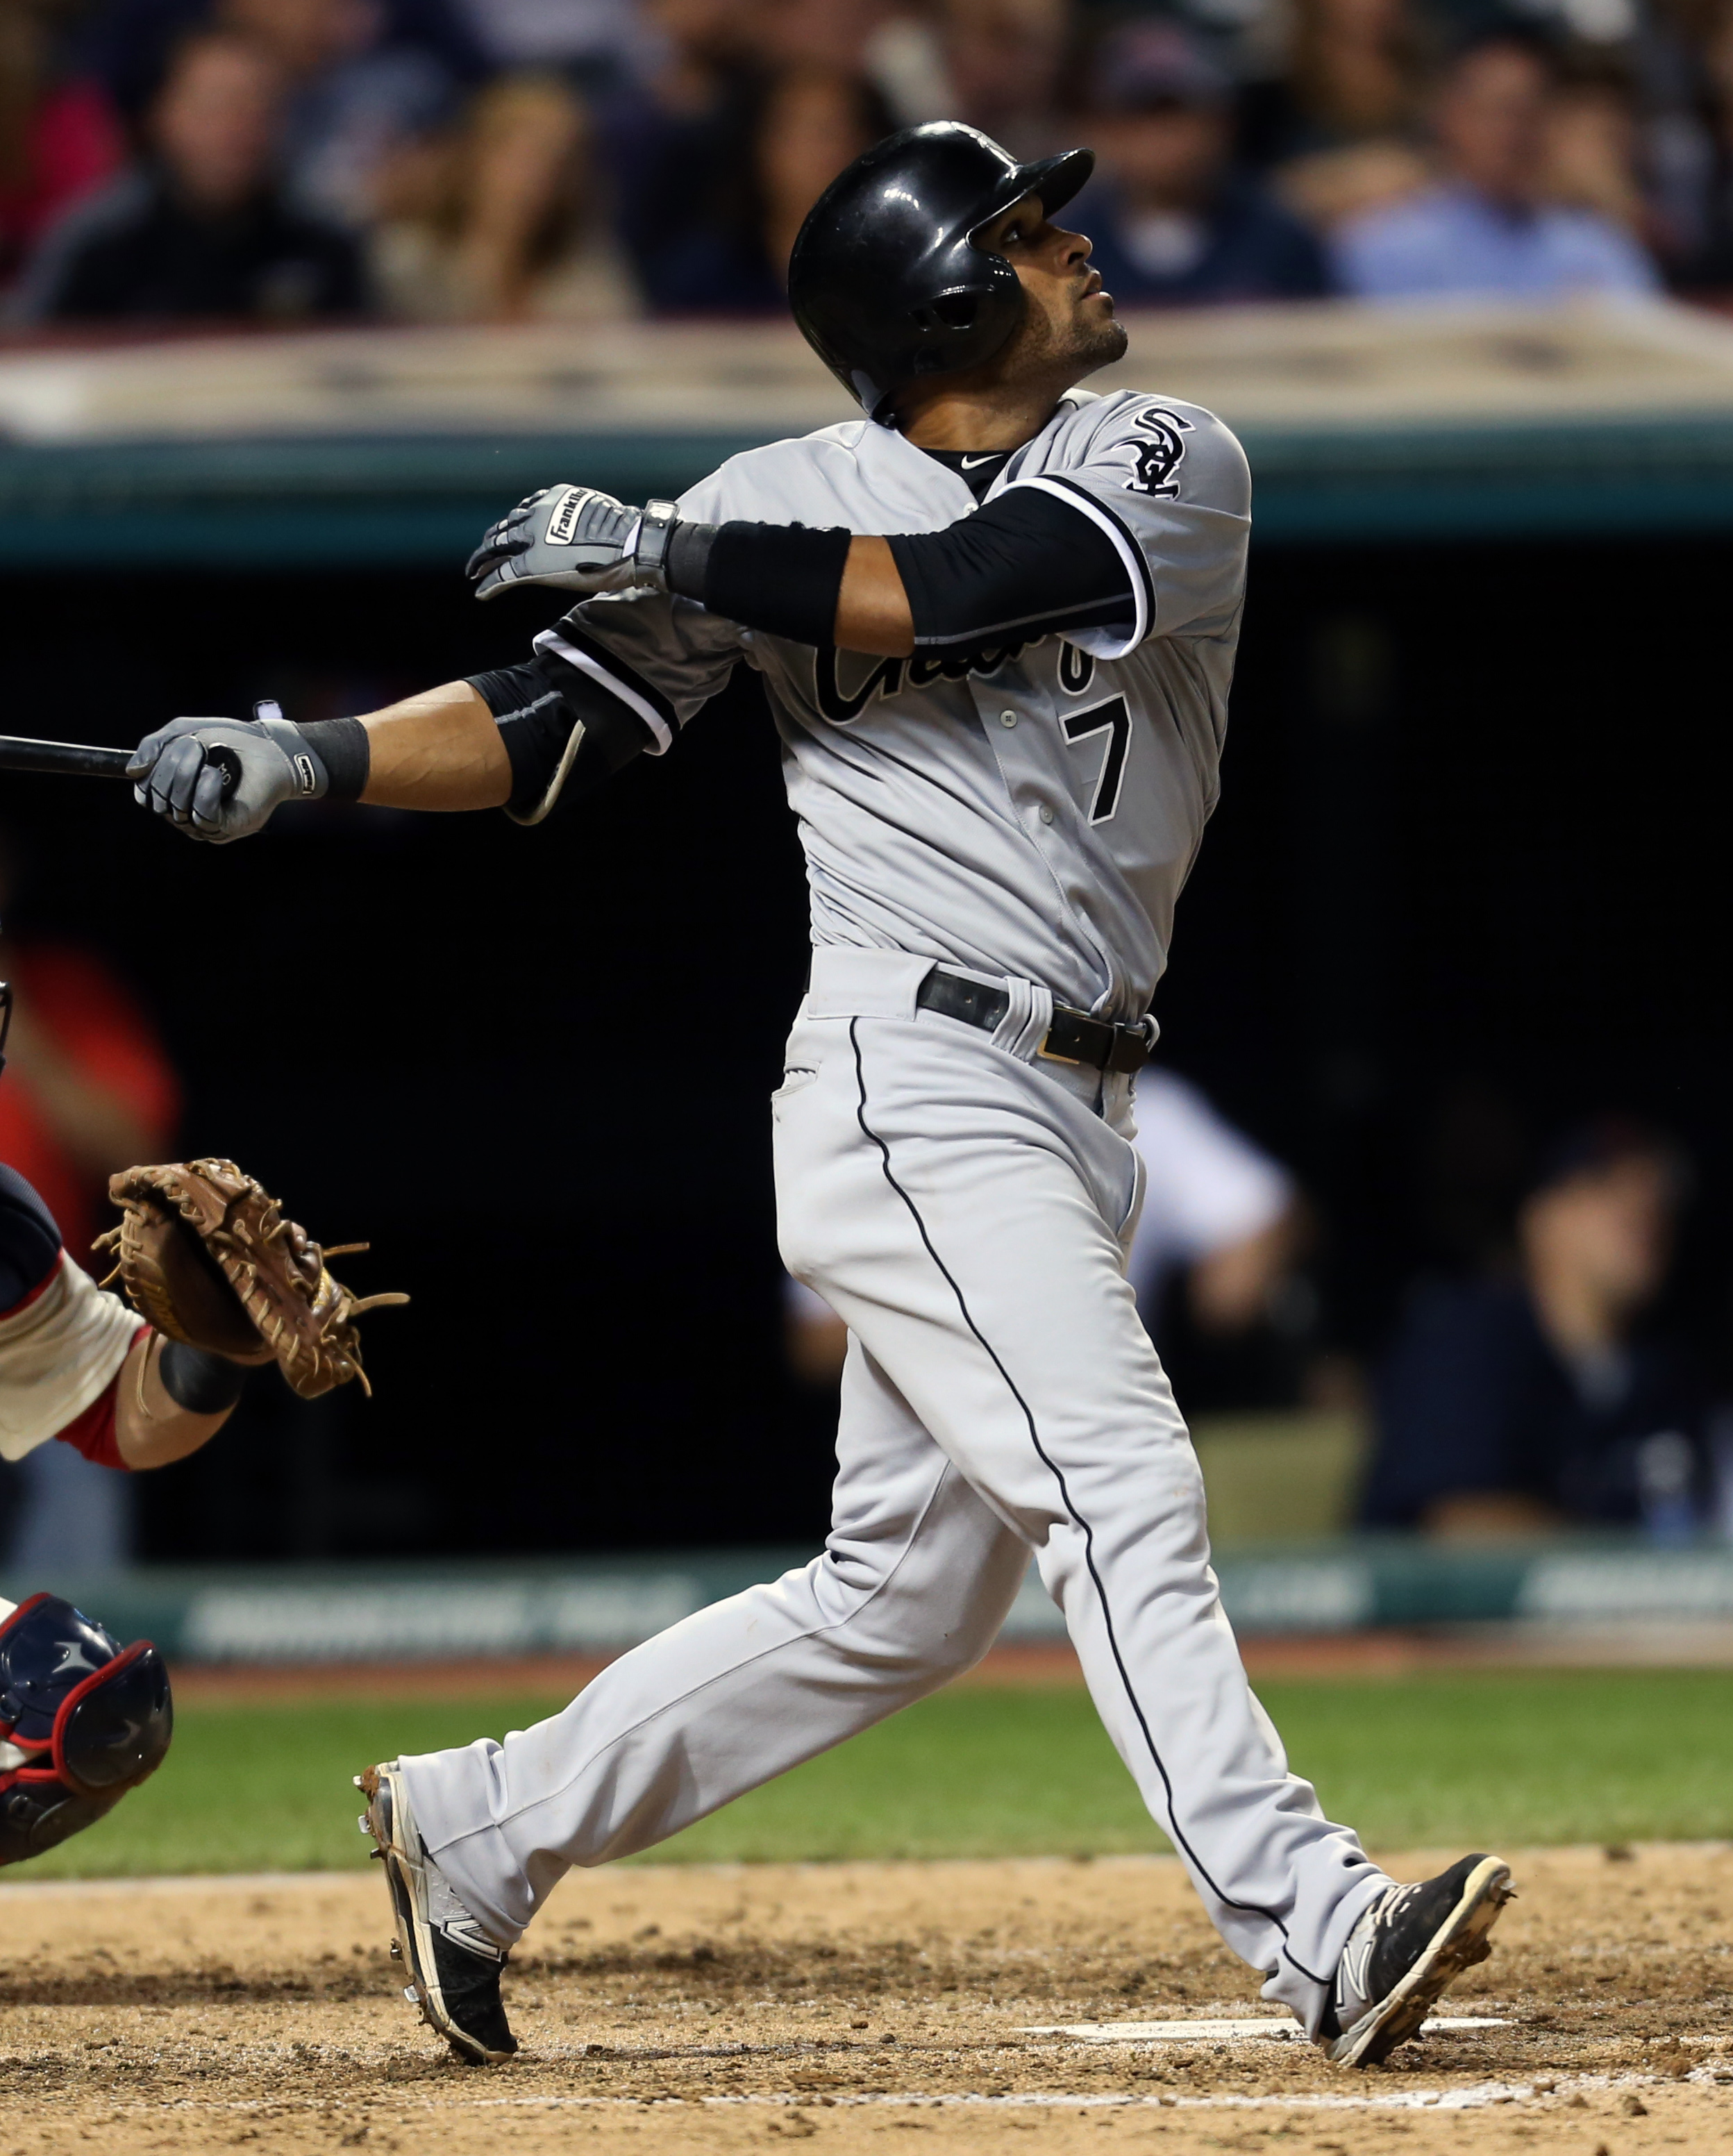 Chicago White Sox's Micah Johnson hits an RBI single off Cleveland Indians starting pitcher Carlos Carrasco during the fifth inning of a baseball game, Saturday, Sept. 19, 2015, in Cleveland. (AP Photo/Ron Schwane)